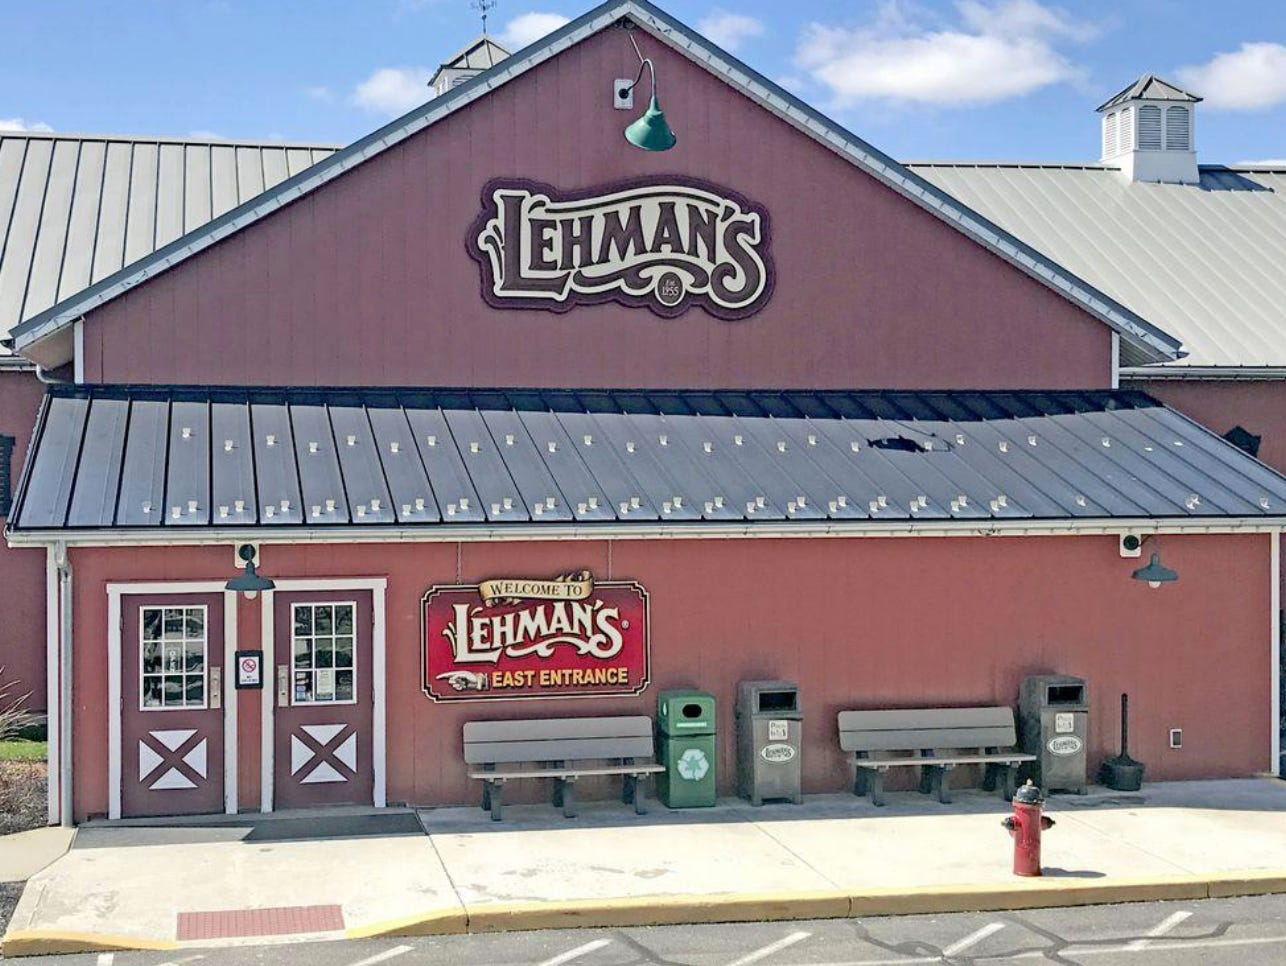 Hartville Hardware Owner Purchases Historic Lehman S Store In Amish Country